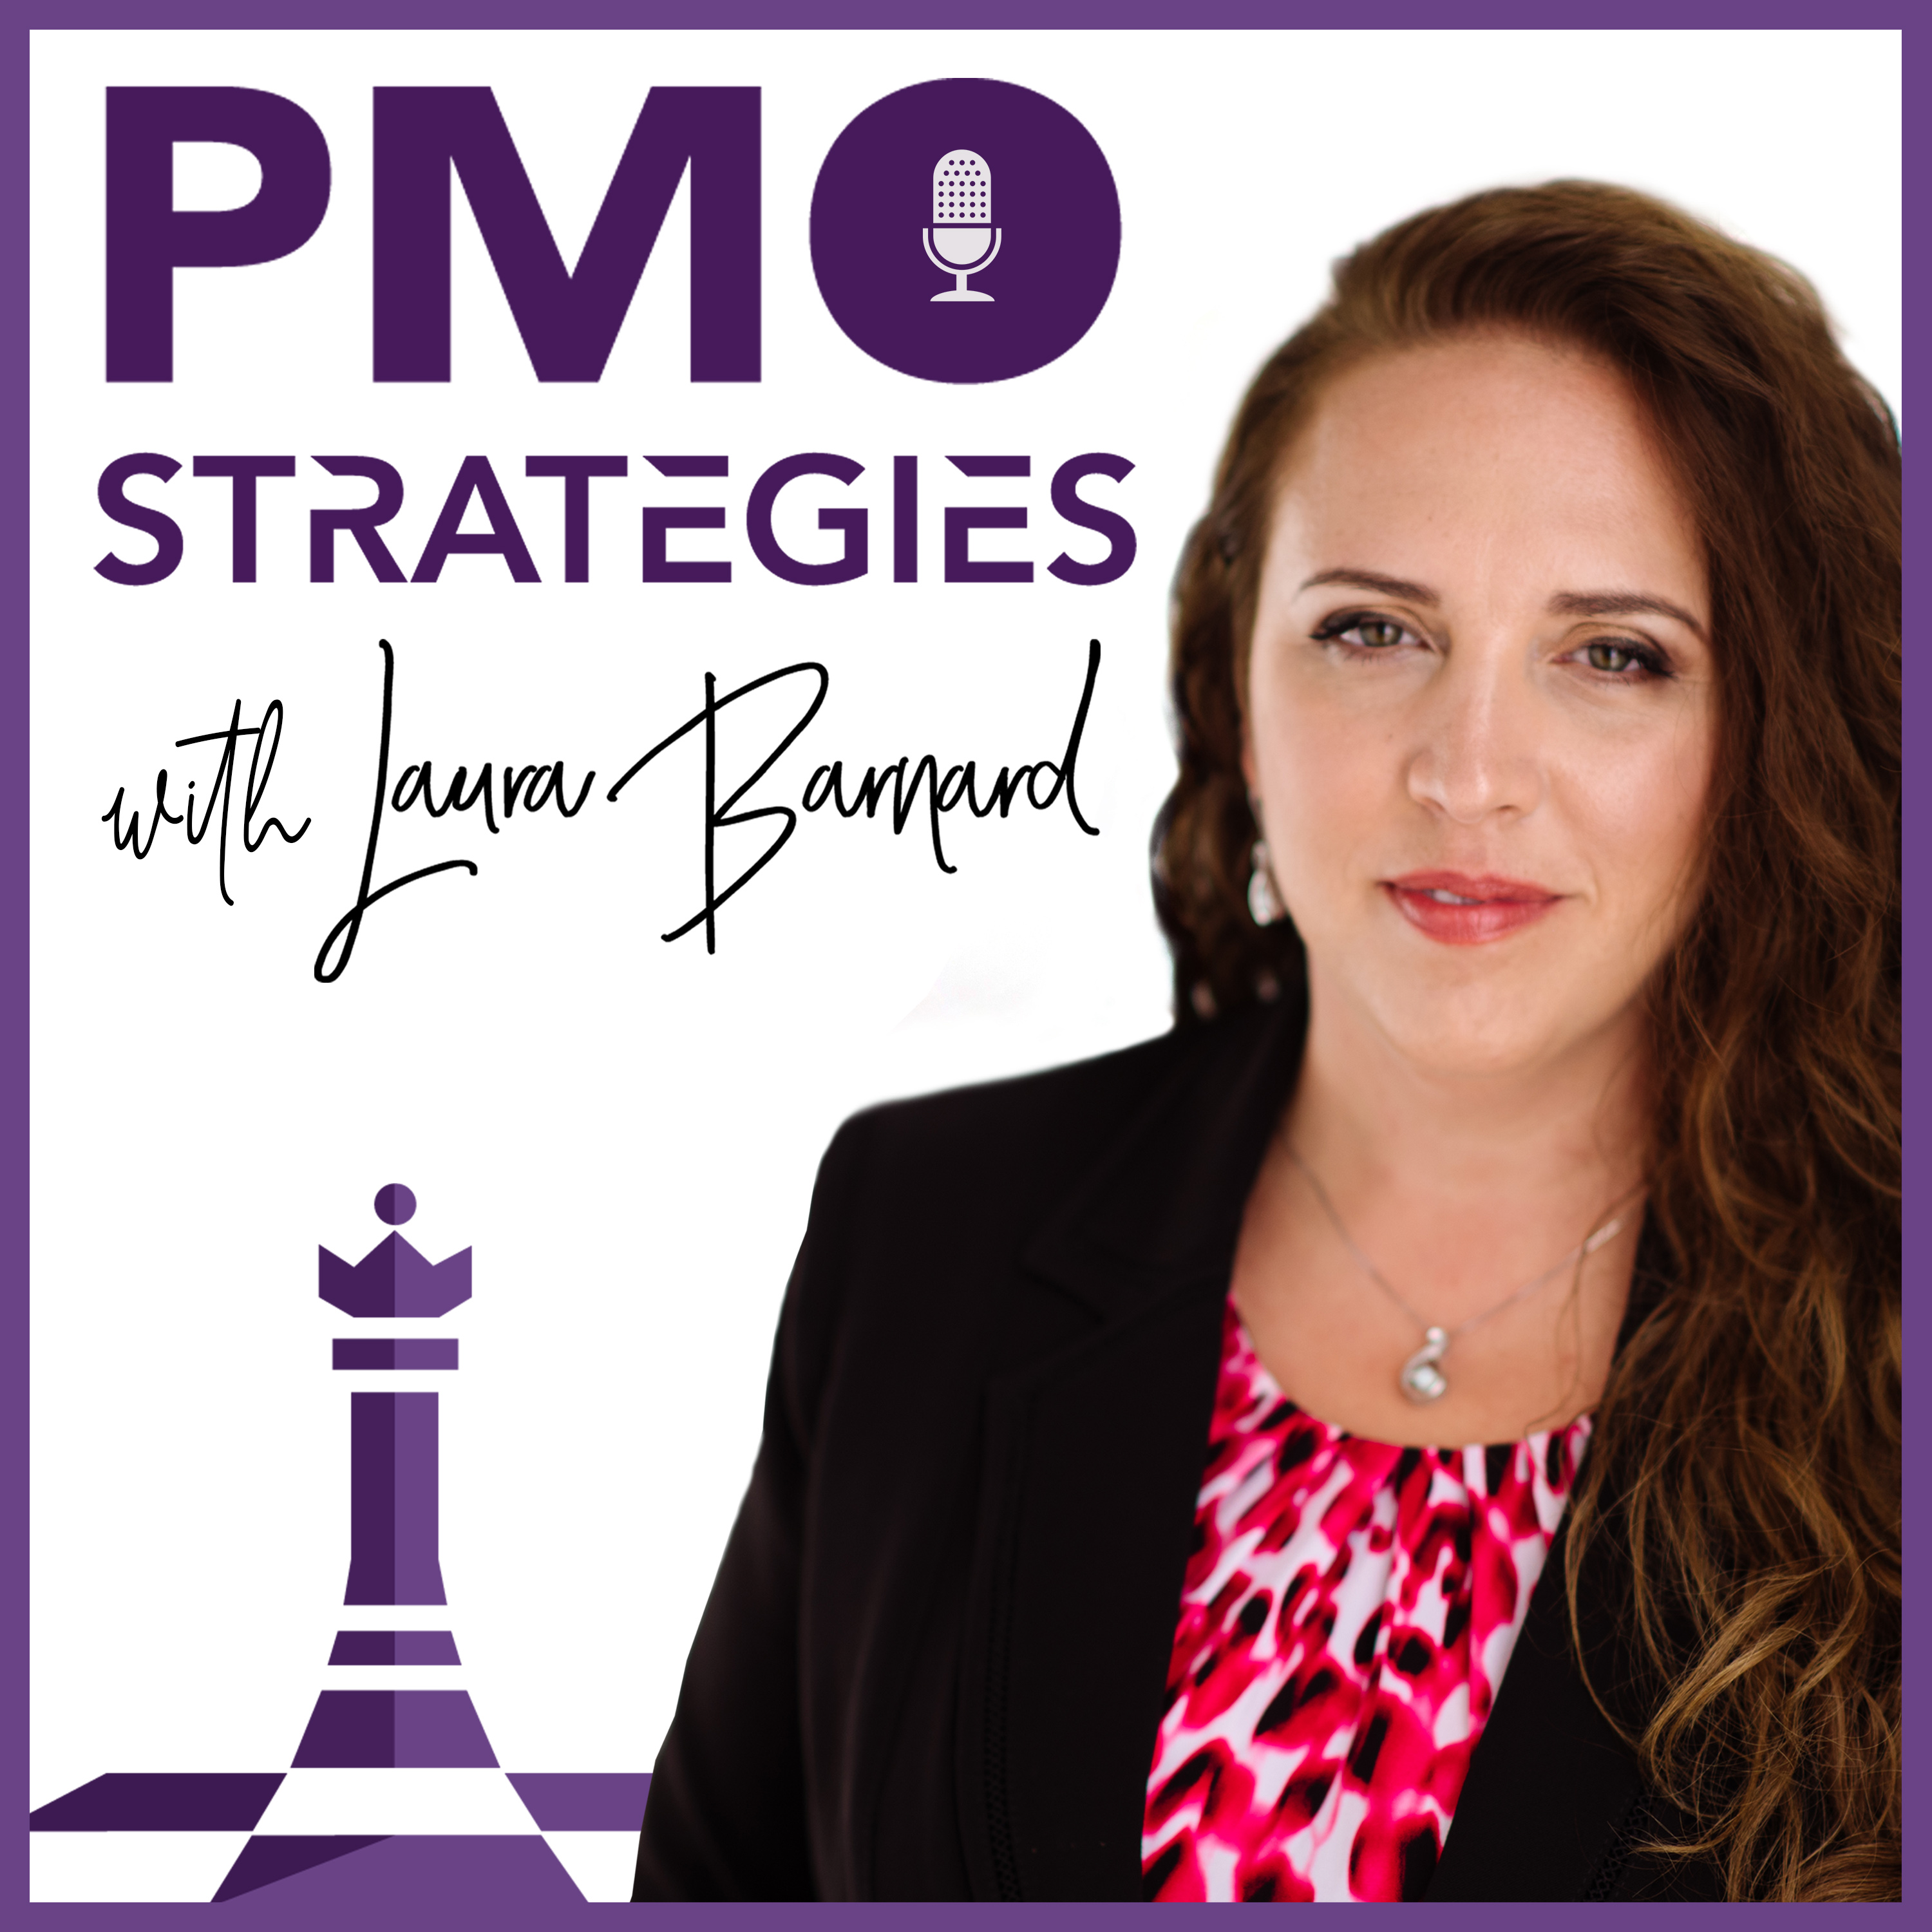 PMO Strategies